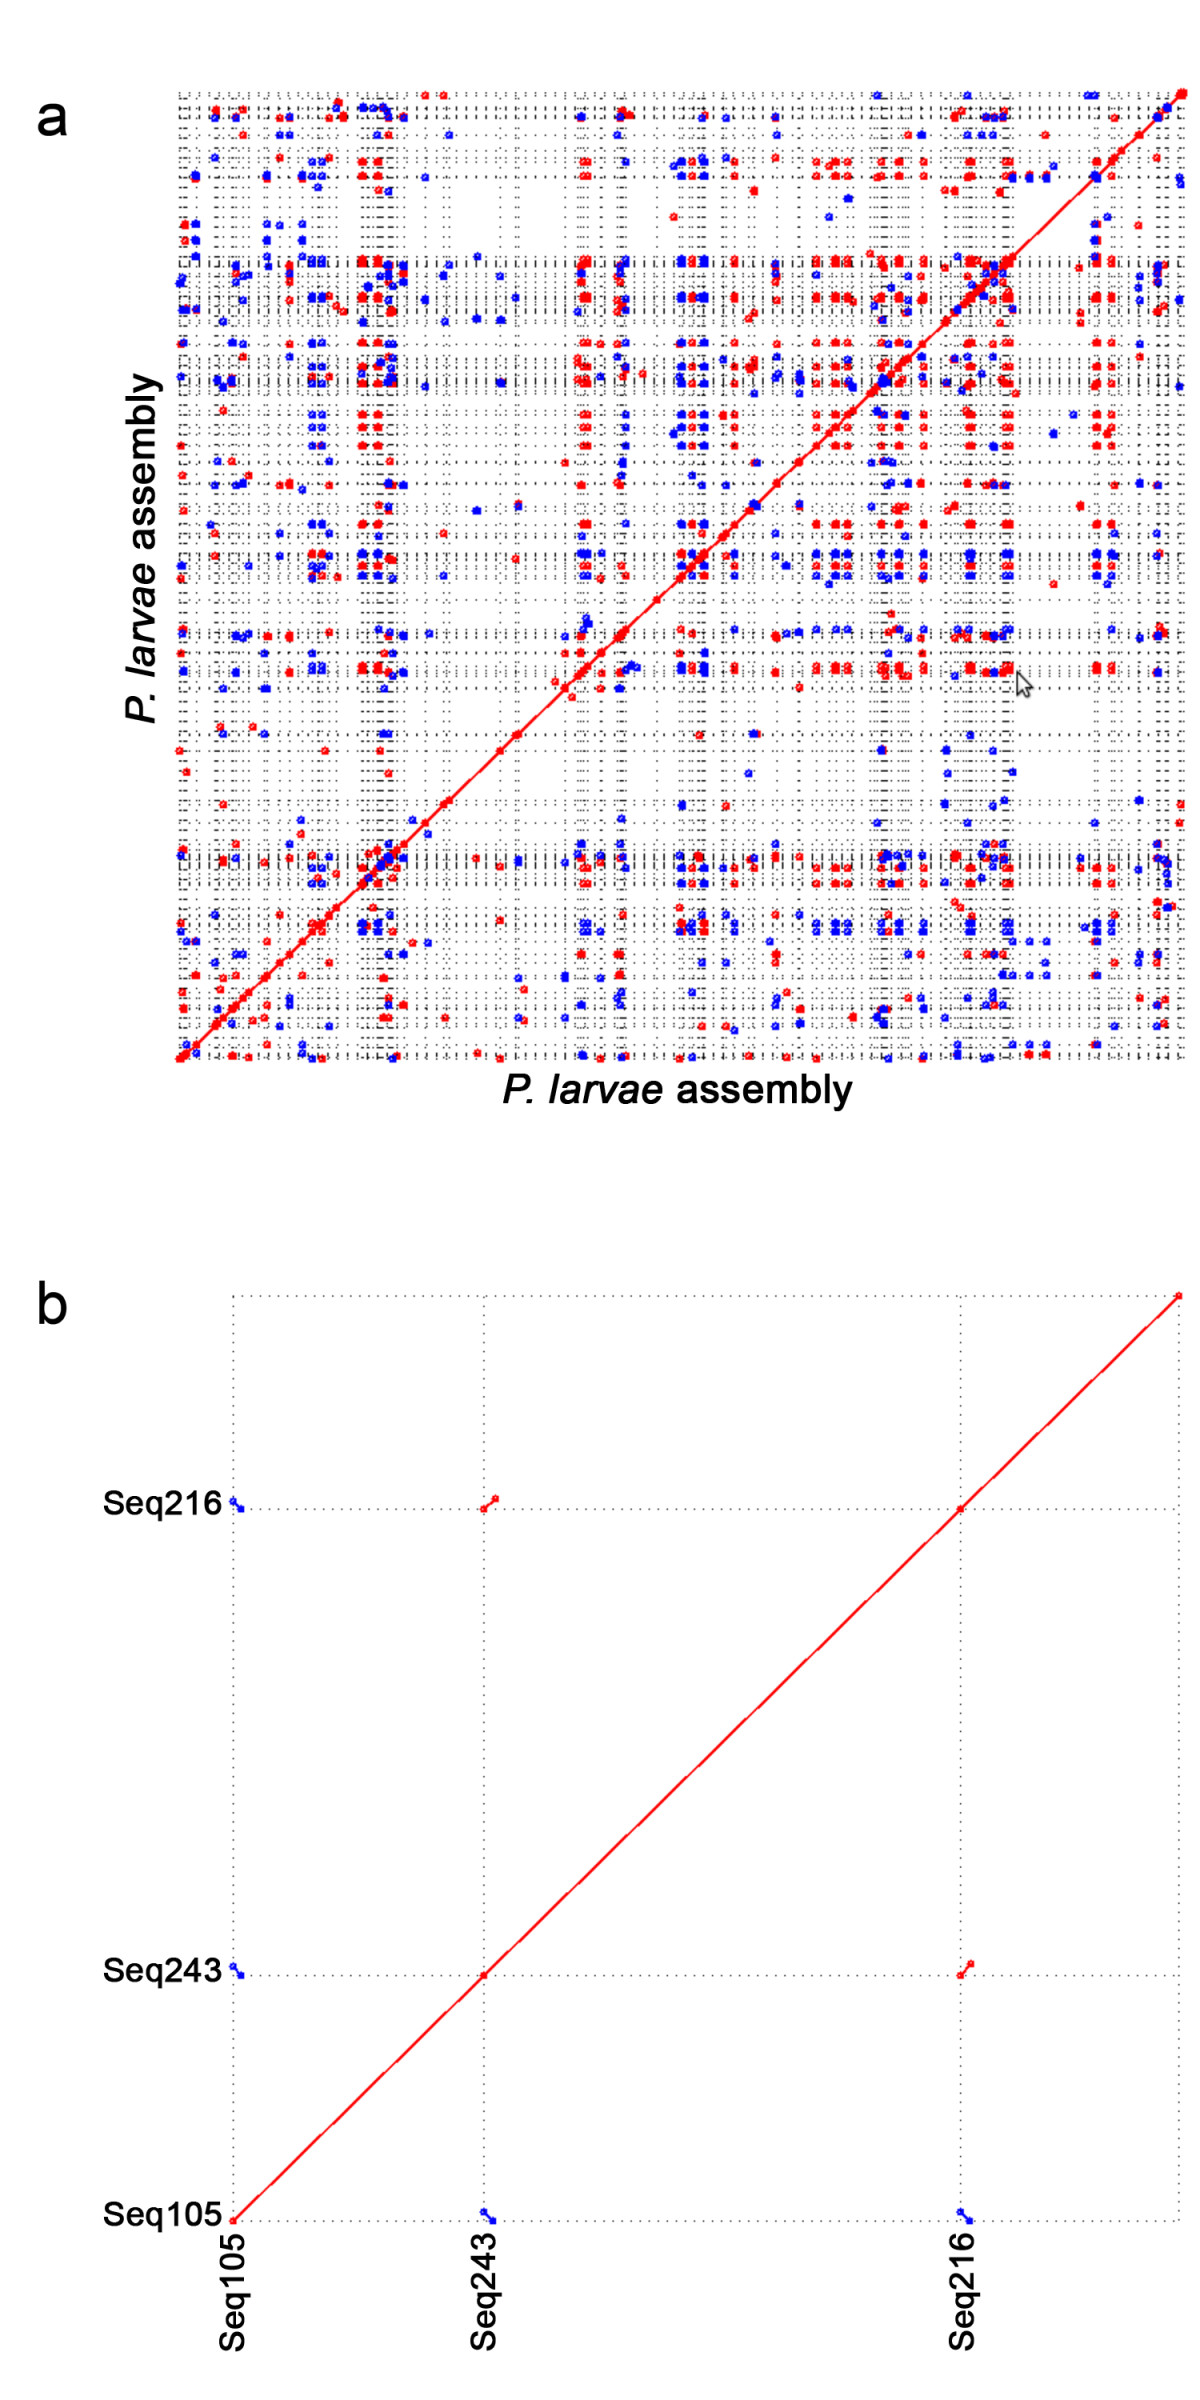 http://static-content.springer.com/image/art%3A10.1186%2F1471-2164-12-450/MediaObjects/12864_2011_3602_Fig1_HTML.jpg